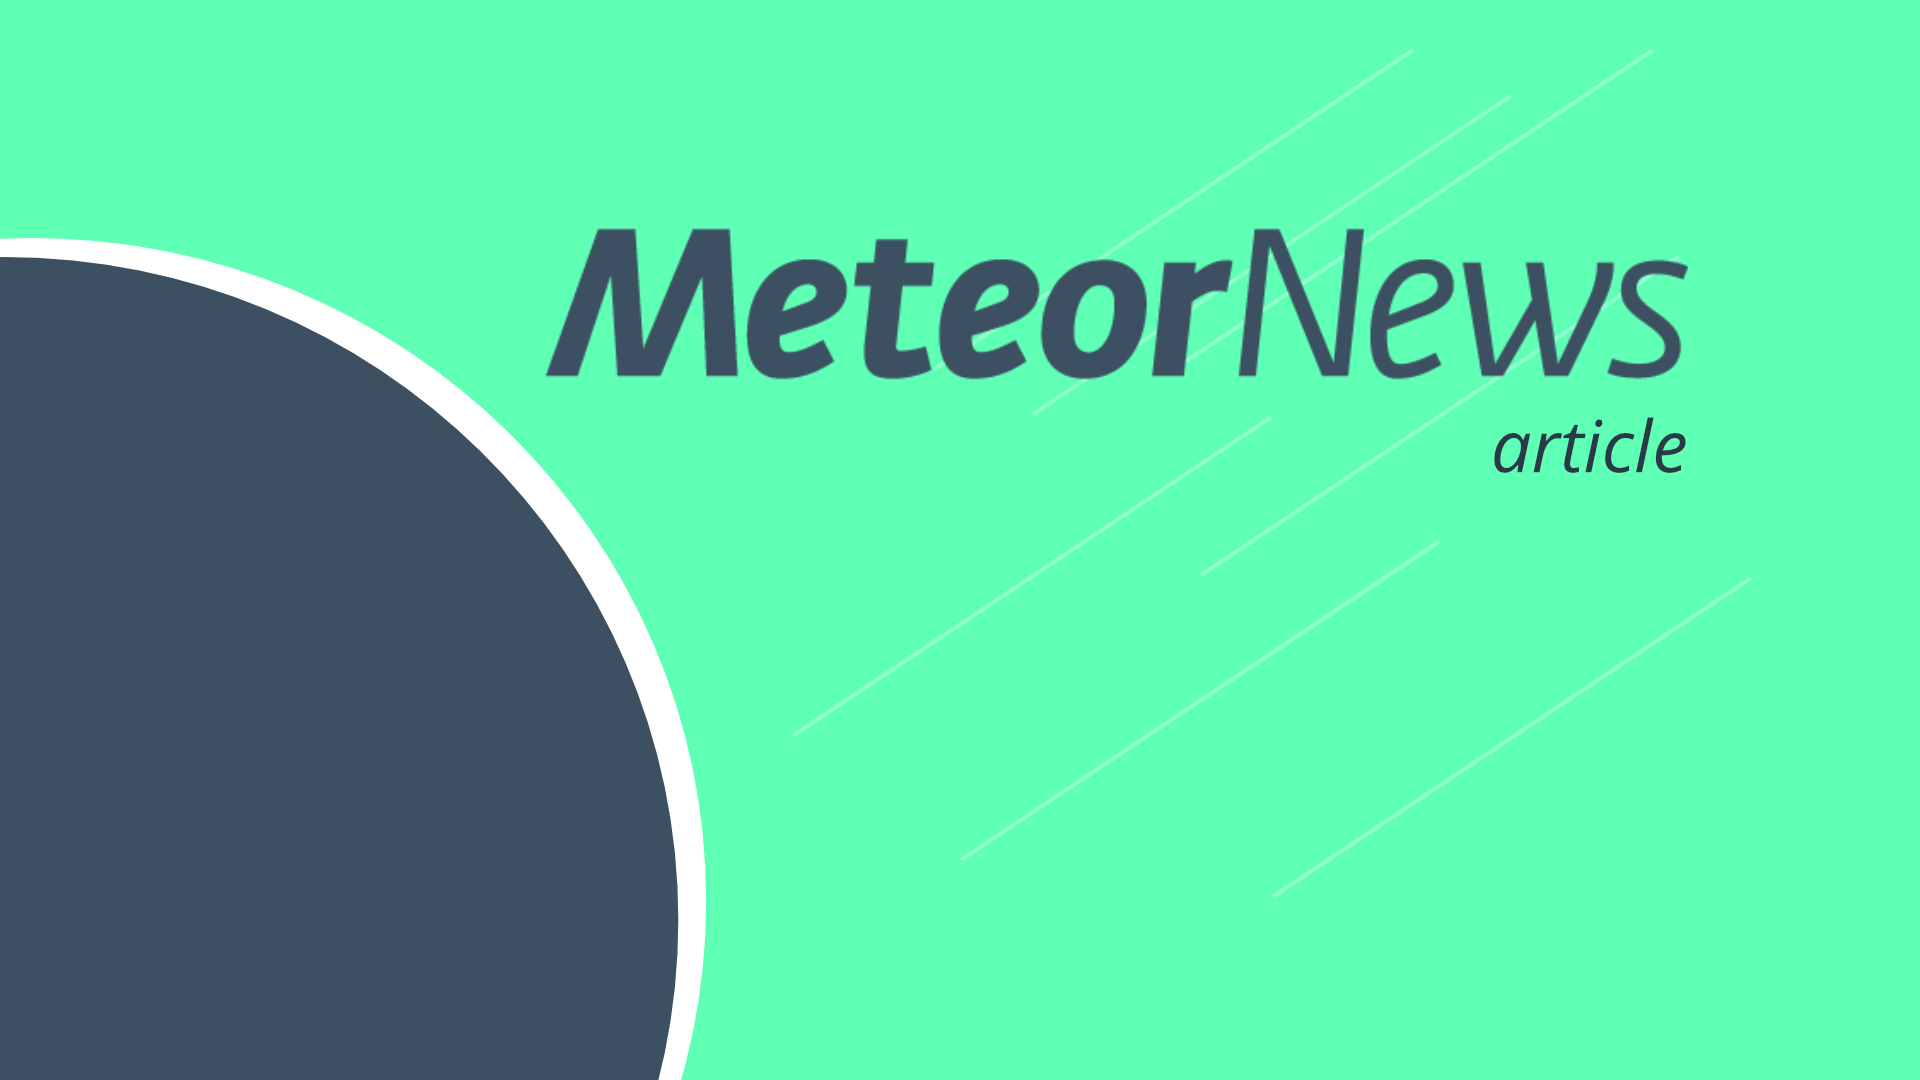 June 30/July 1 2016 meteor observation from North Florida